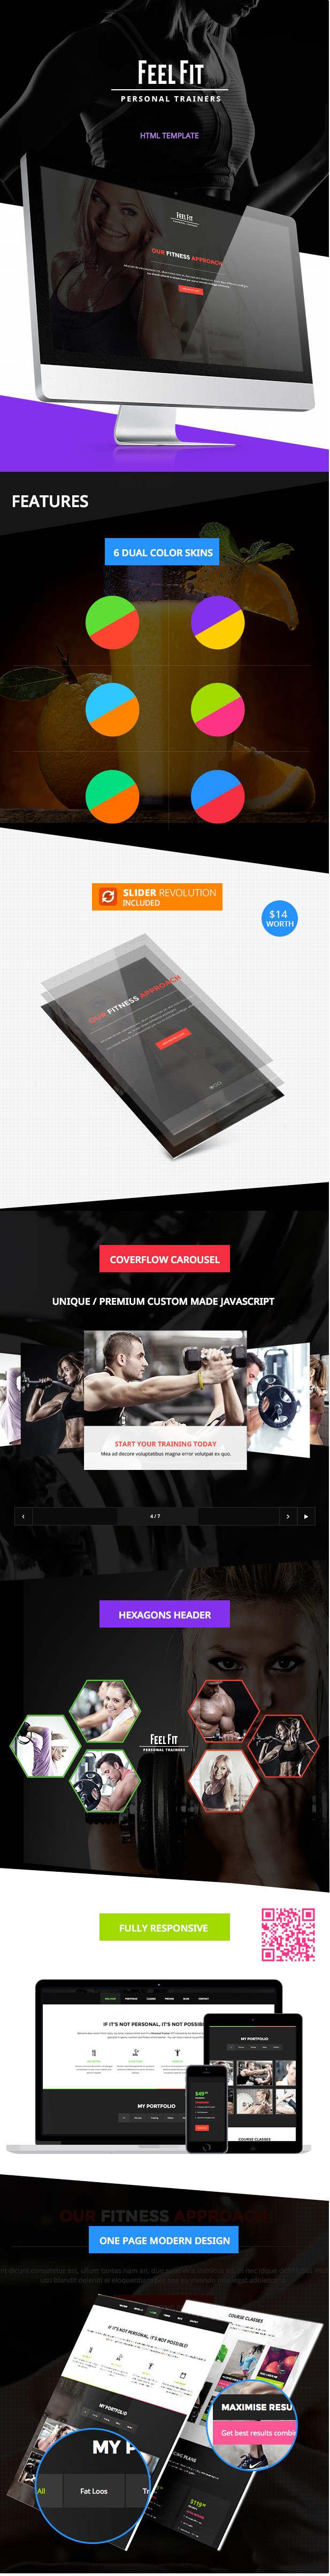 Personal Trainer - One Page HTML5 Template - 3 [object object] - personaltrainer - Personal Trainer – One Page HTML5 Template